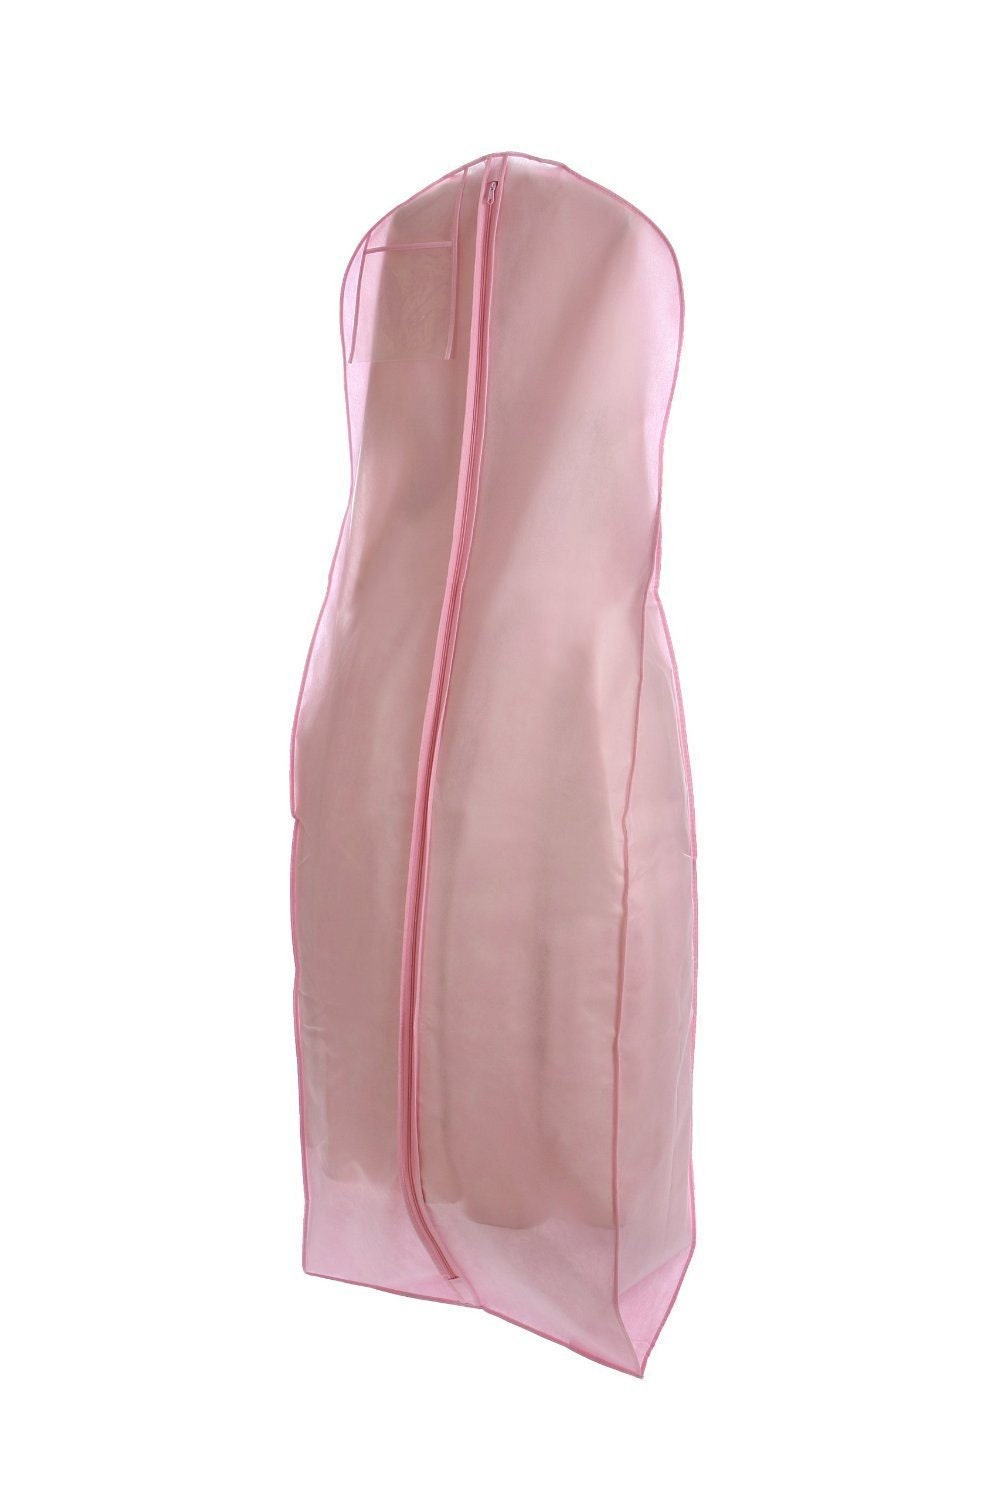 72 breathable wedding gown dress garment cover bag with. Black Bedroom Furniture Sets. Home Design Ideas